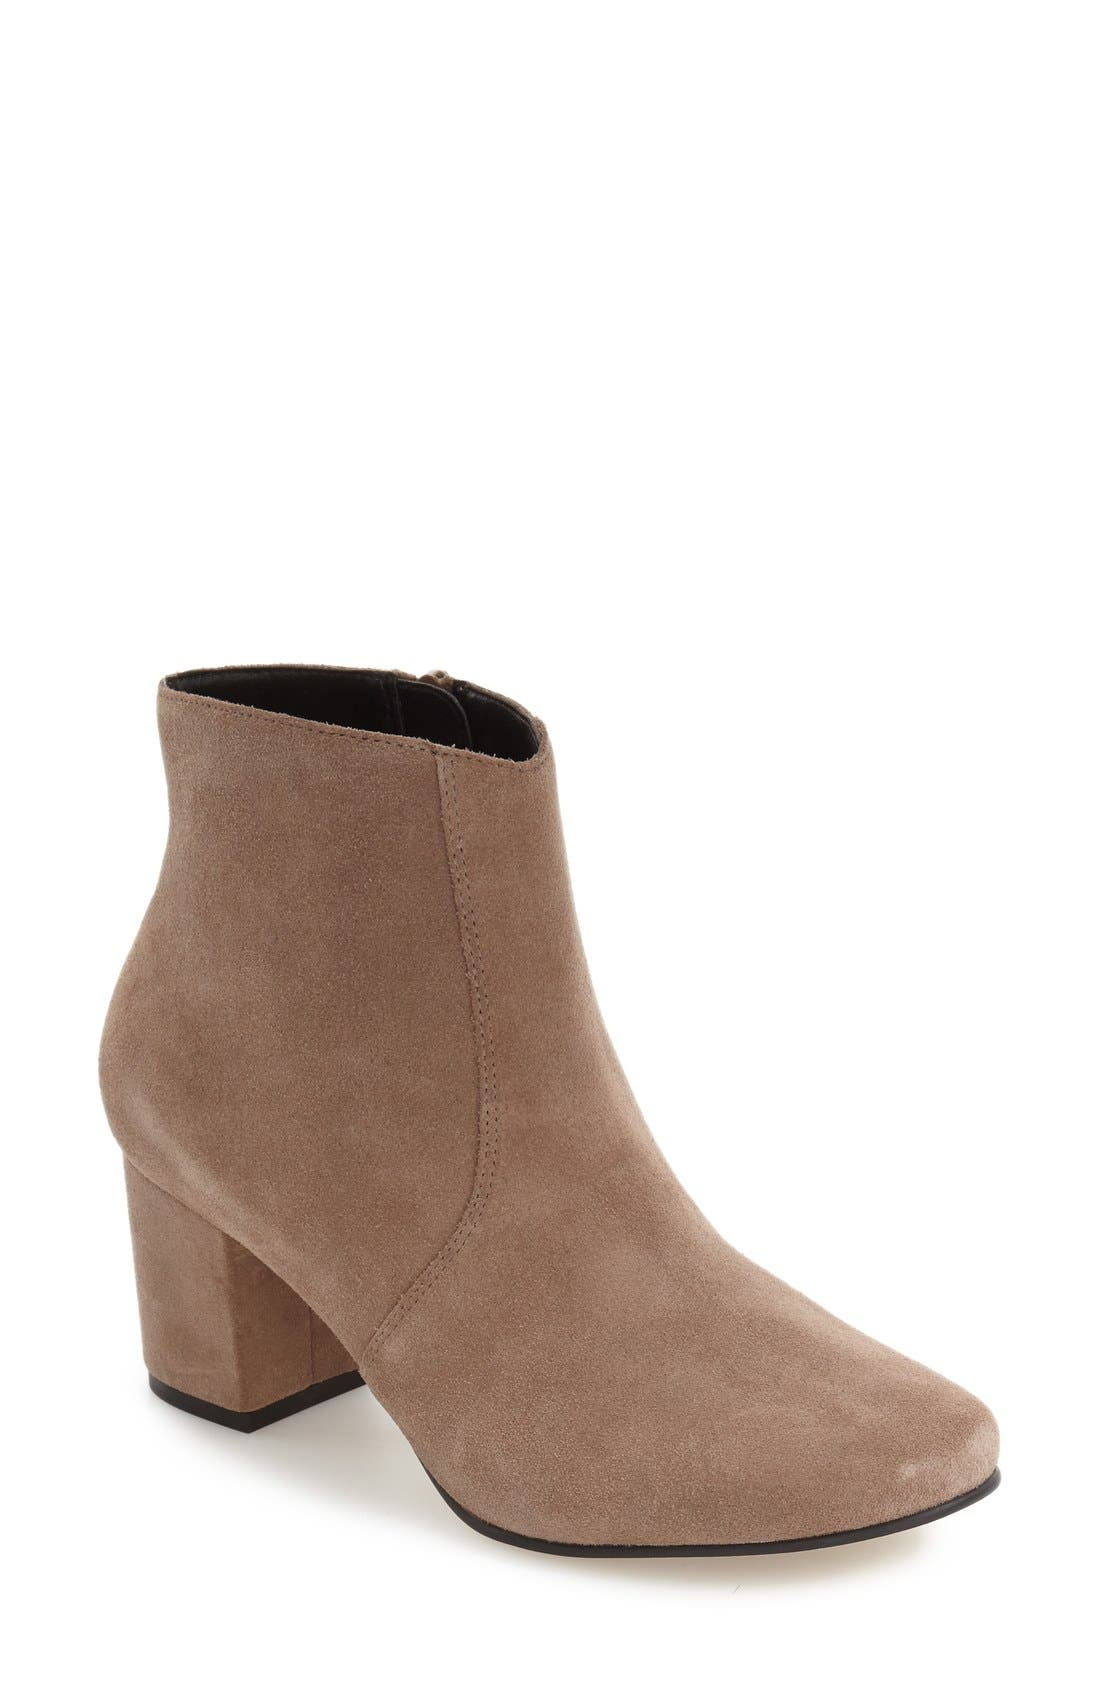 Main Image - Sole Society Pippa Bootie (Women)